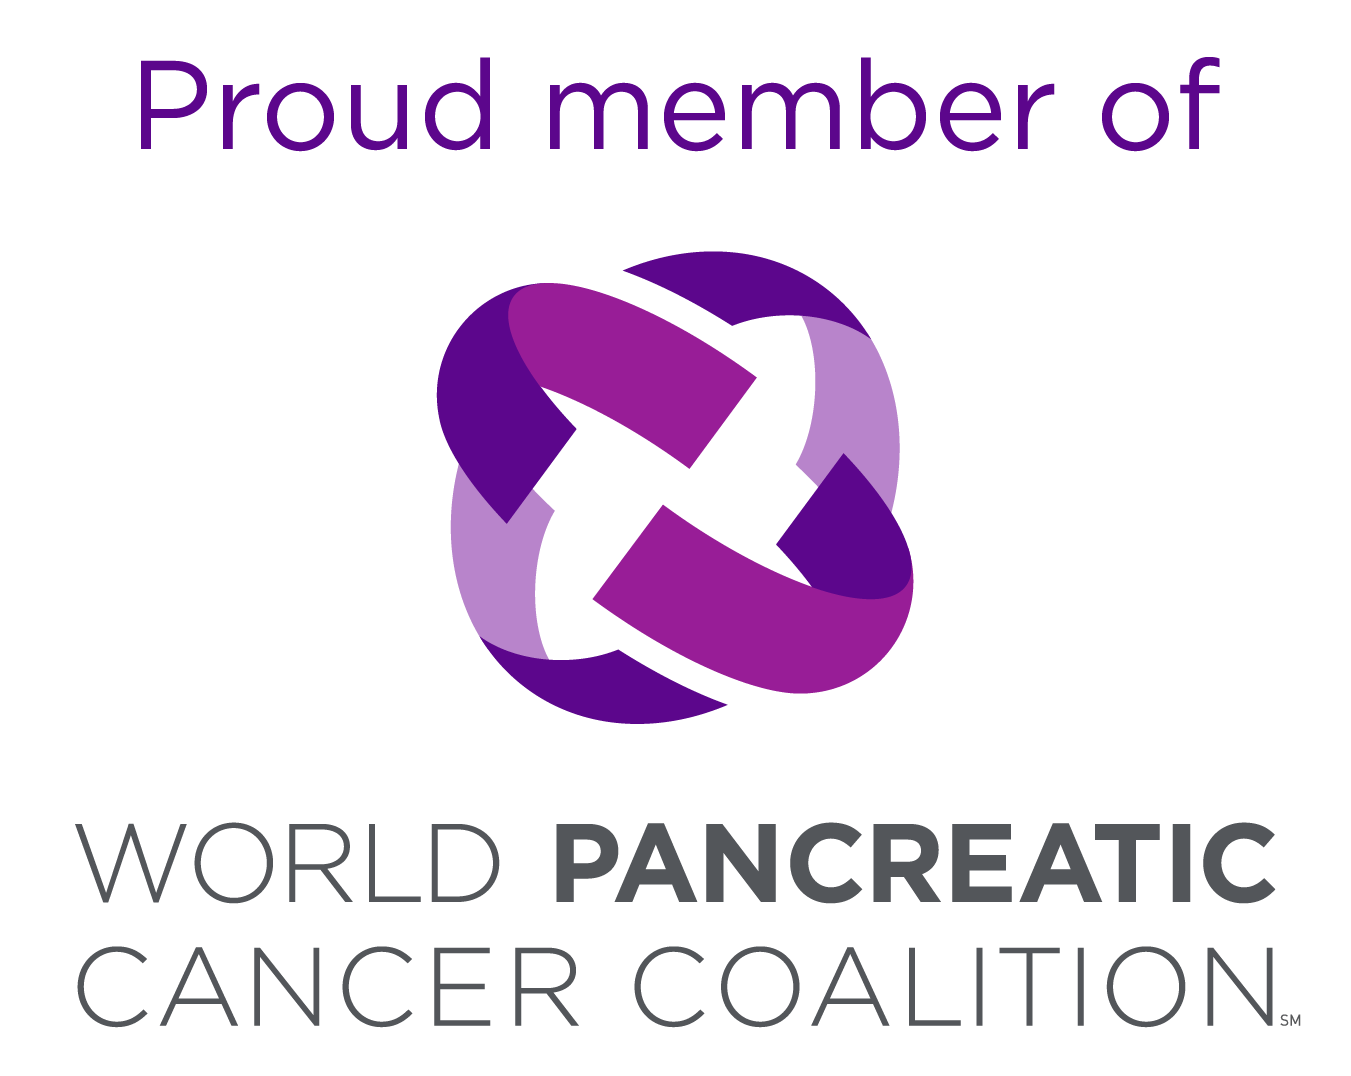 World-Pancreatic-Cancer-Coalition-Logo_V_RGB_Proud-Member-01.png